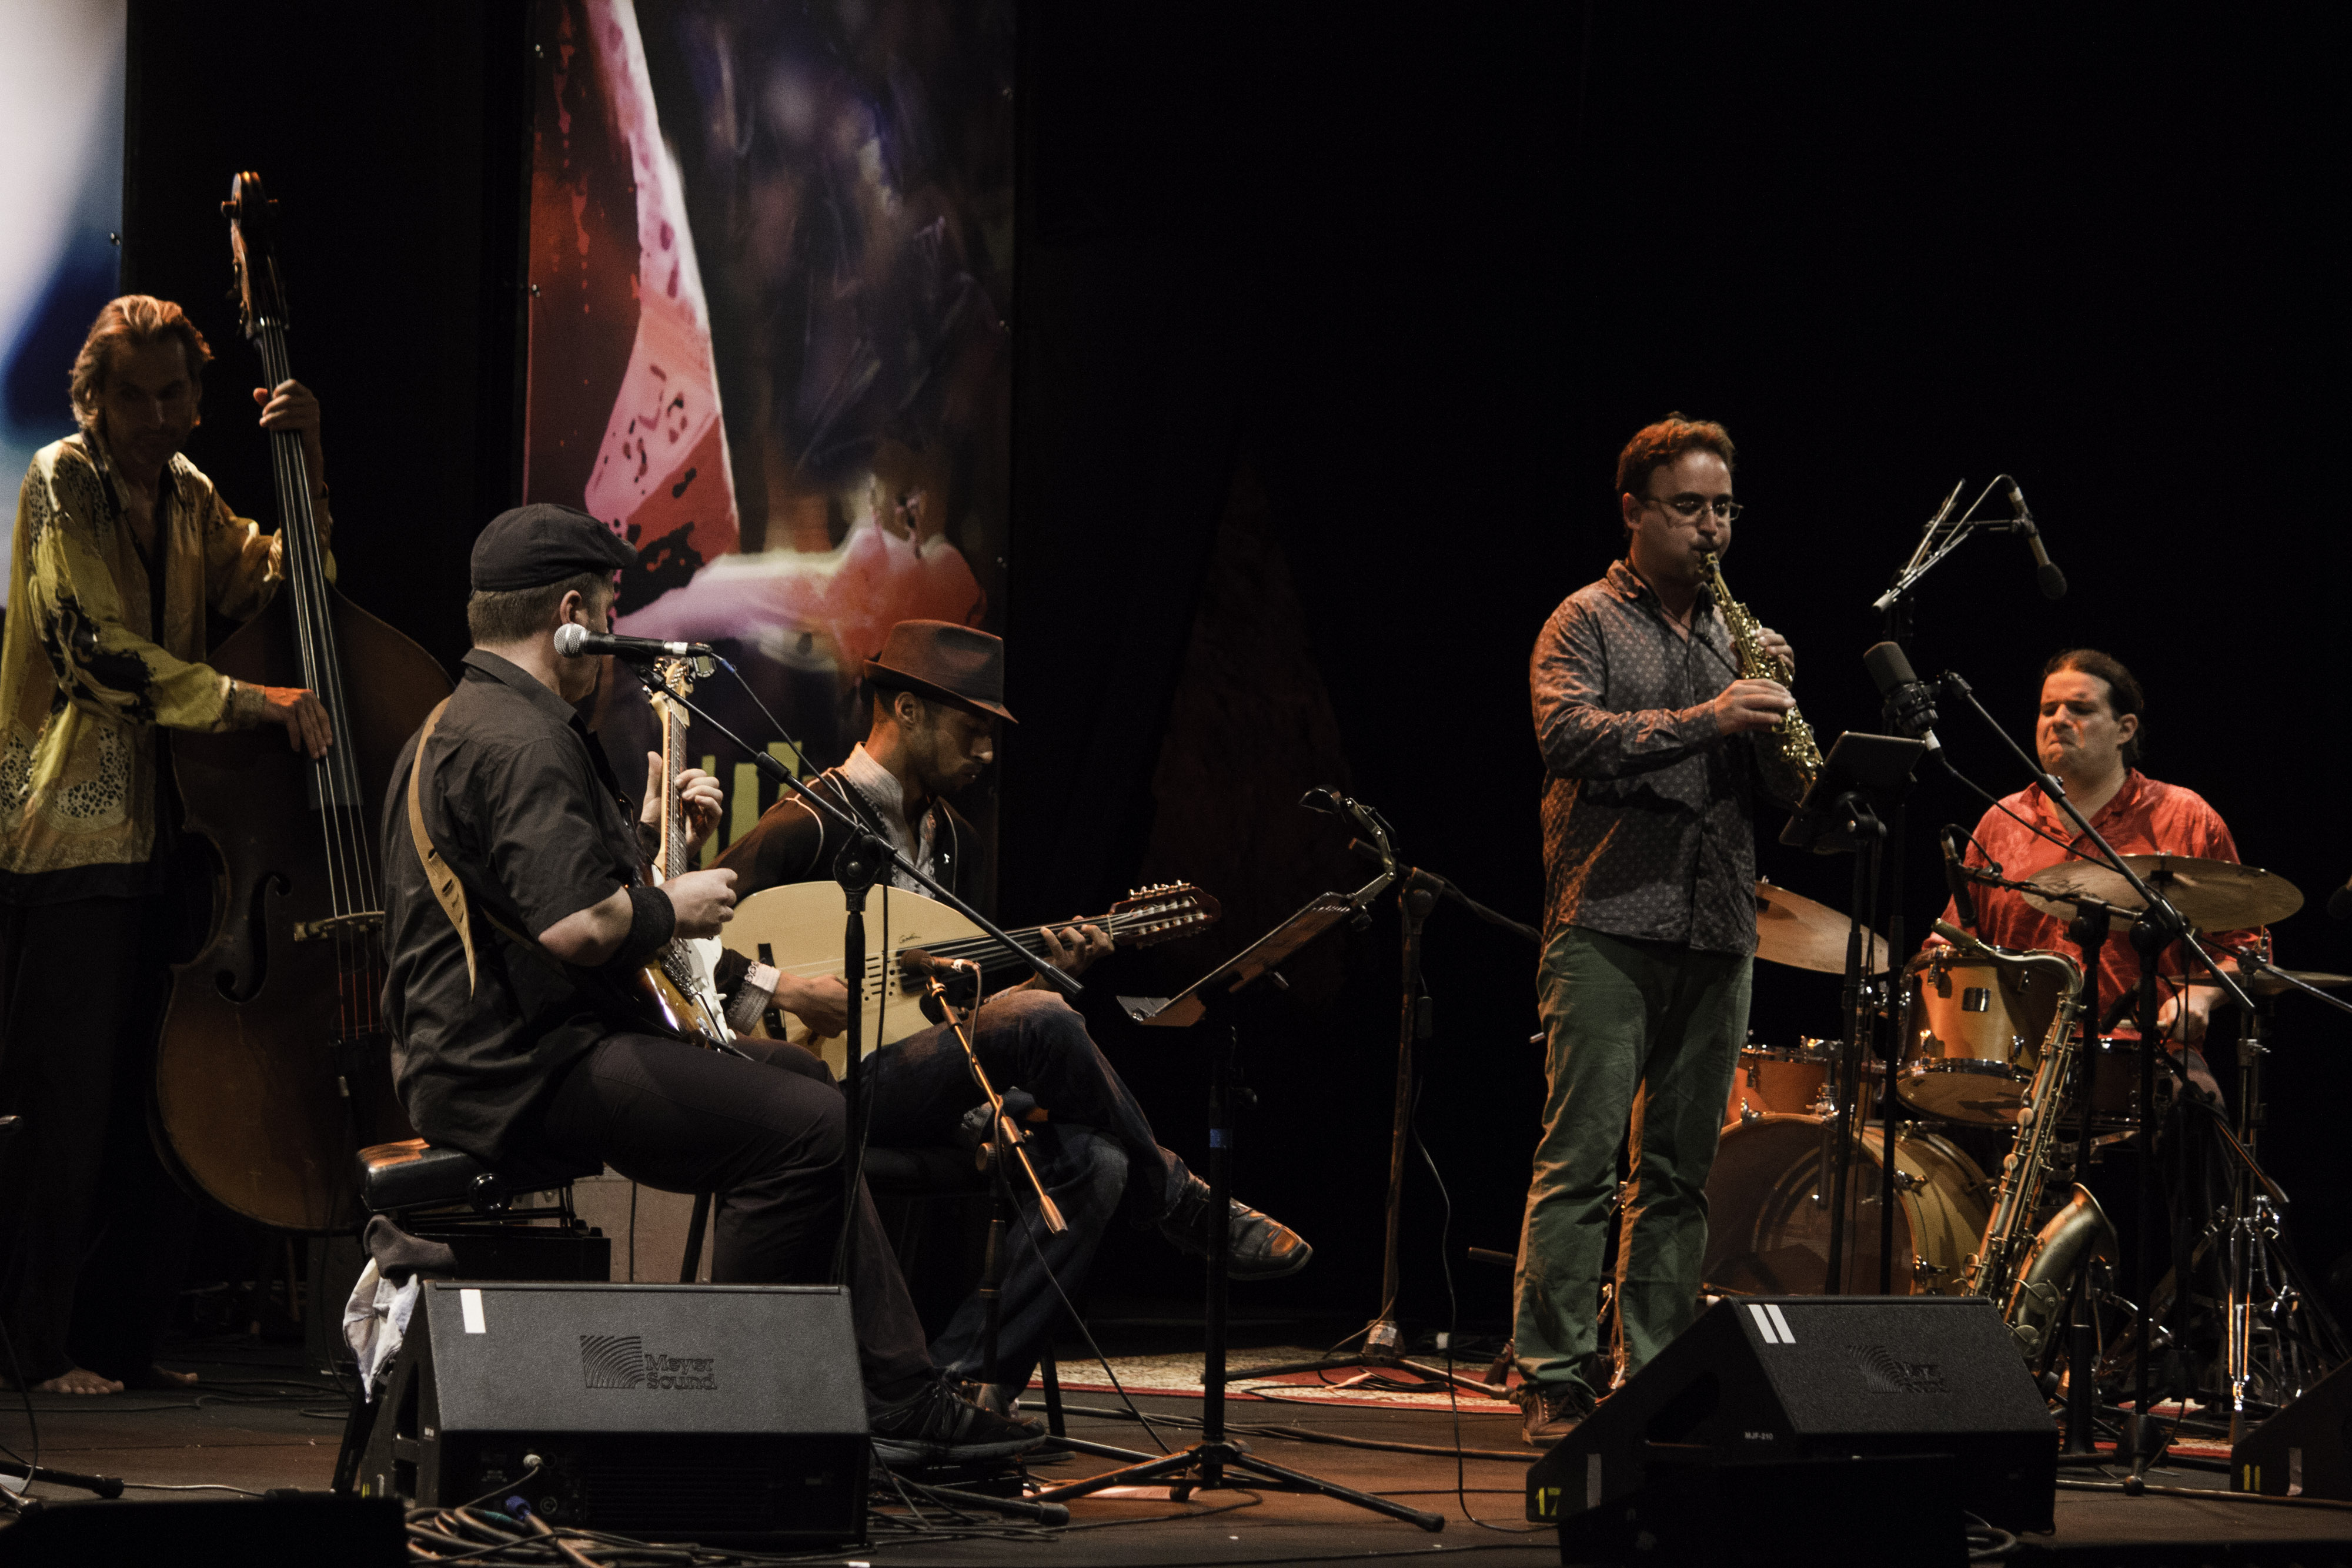 for Free Hands and Alaa Zouiten at Jazz au Chellah 2014